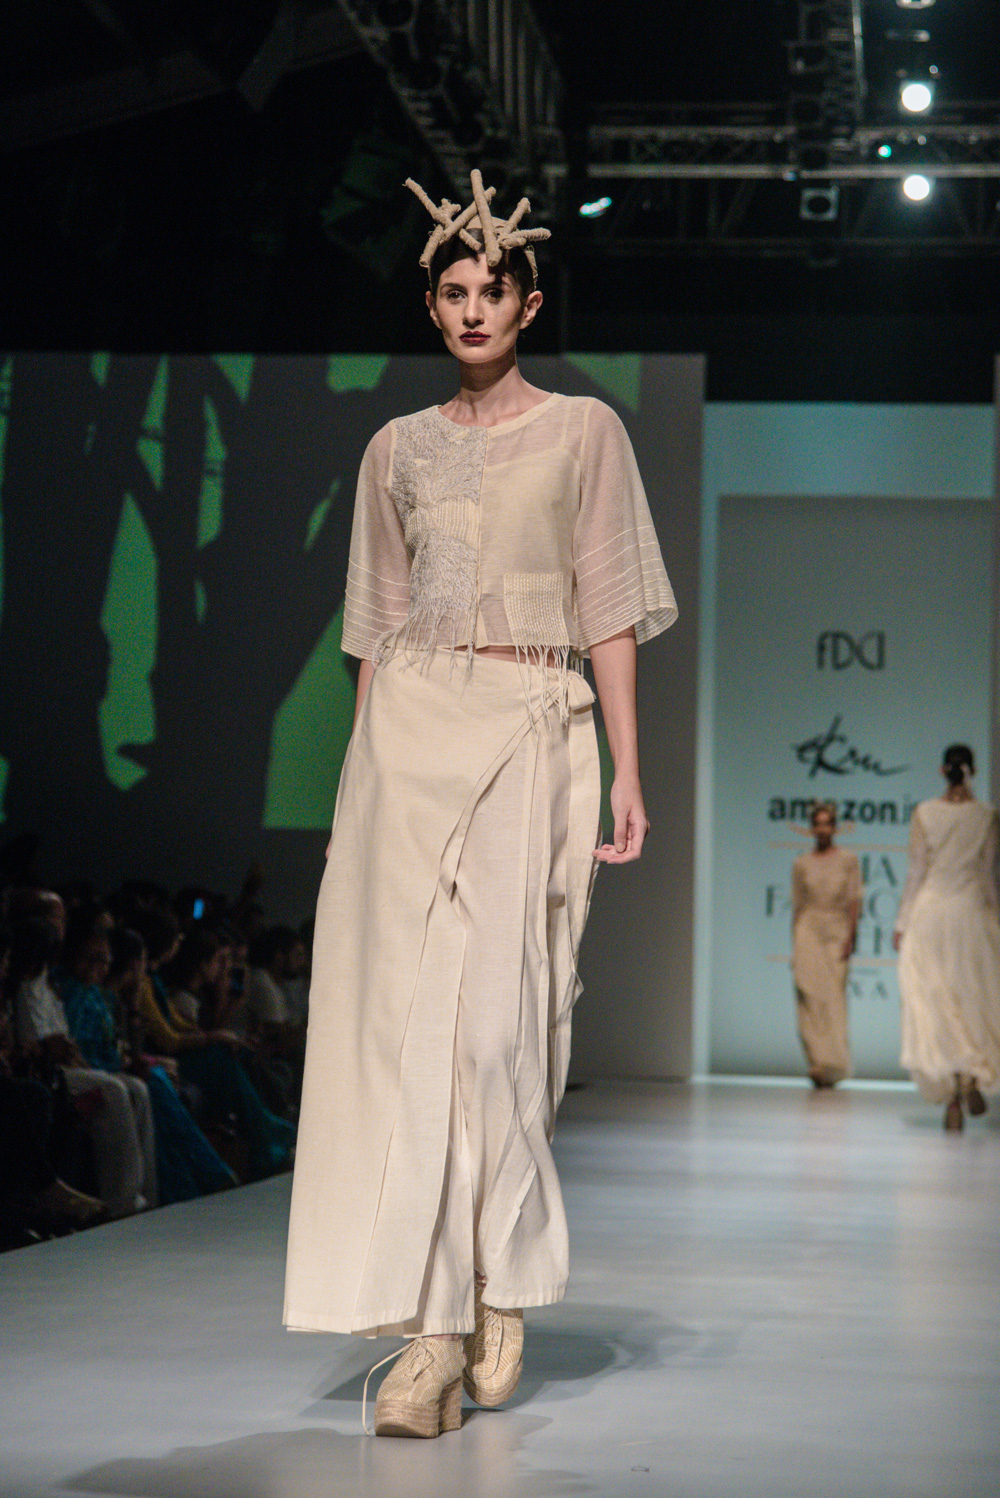 Ekru by Ektaa FDCI Amazon India Fashion Week Spring Summer 2018 Look 2